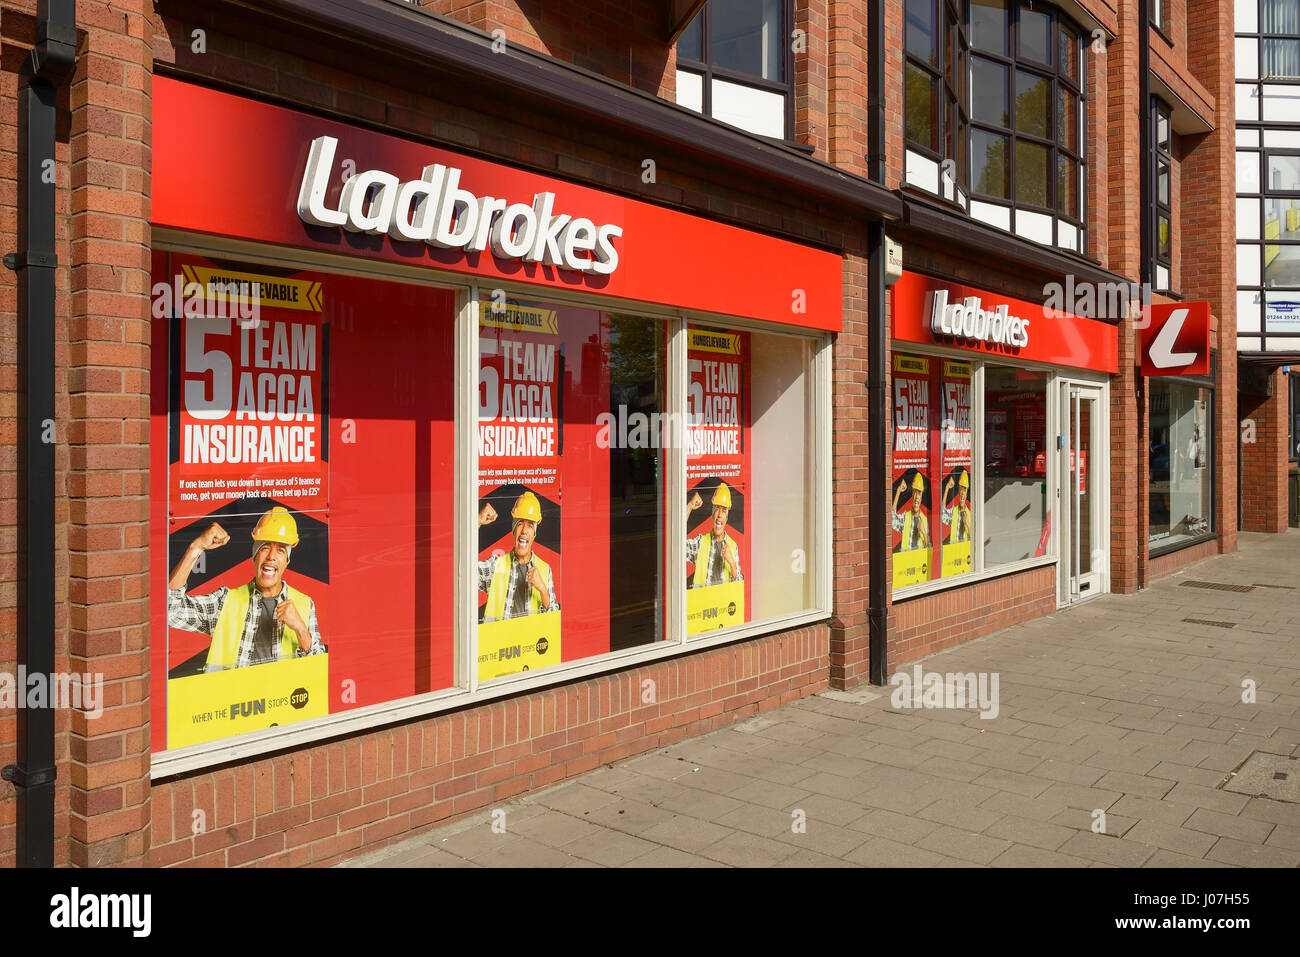 Ladbrokes bookmaker shopfront in Chester UK - Stock Image